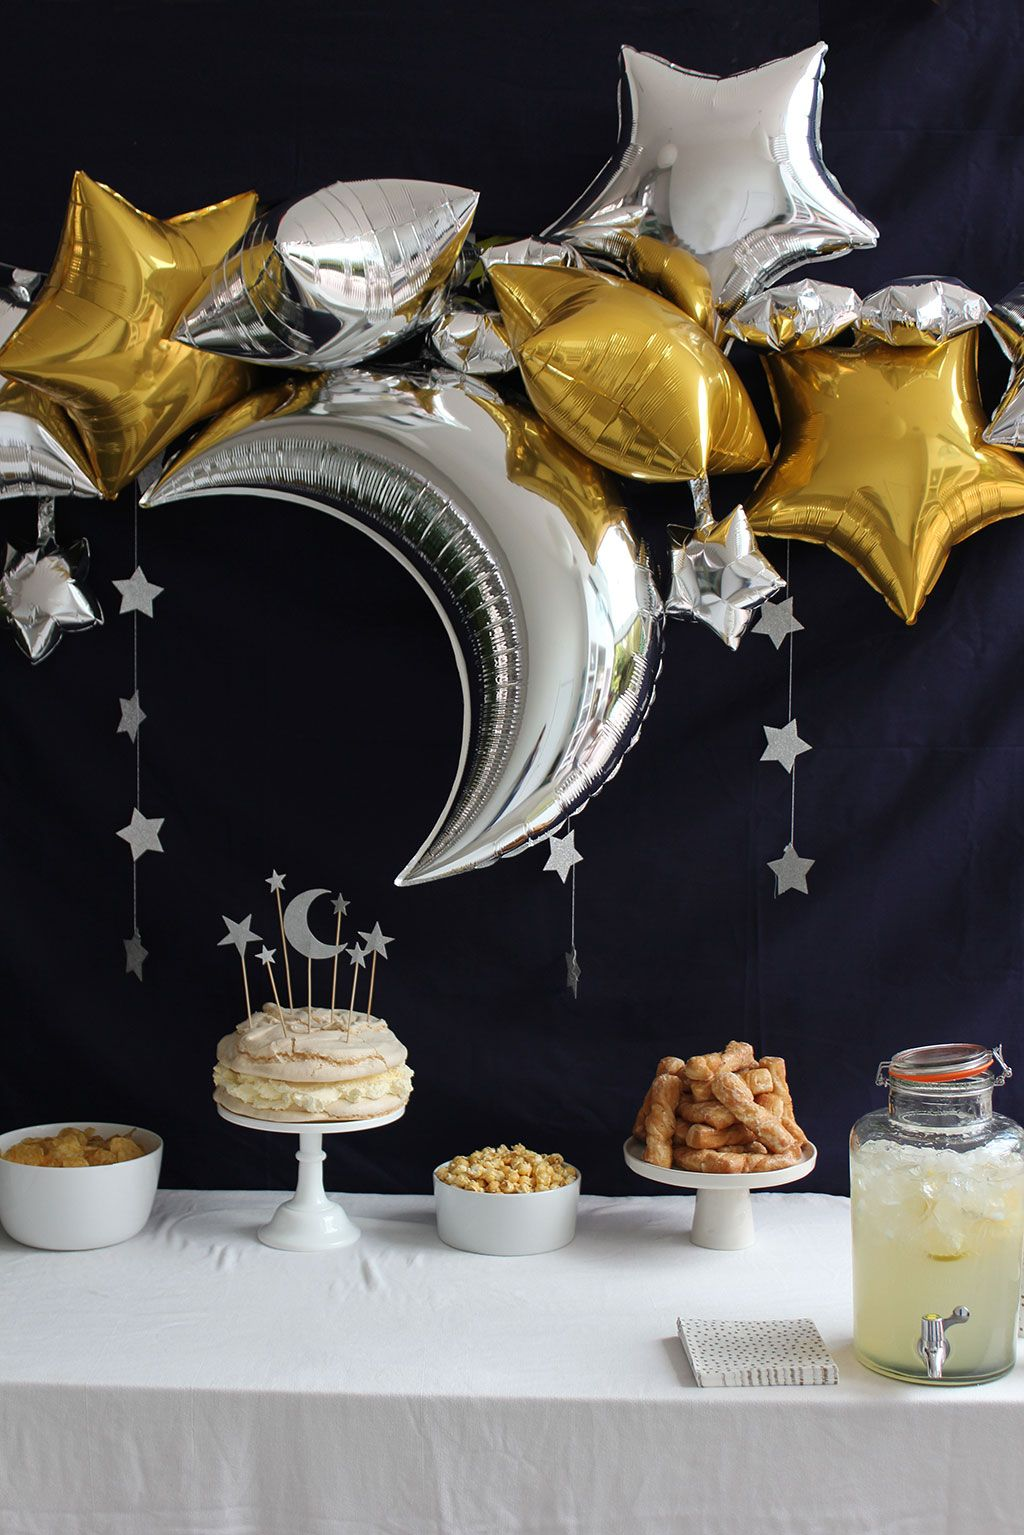 birthday desert table ideas gold and silver stars and moon pinteres. Black Bedroom Furniture Sets. Home Design Ideas